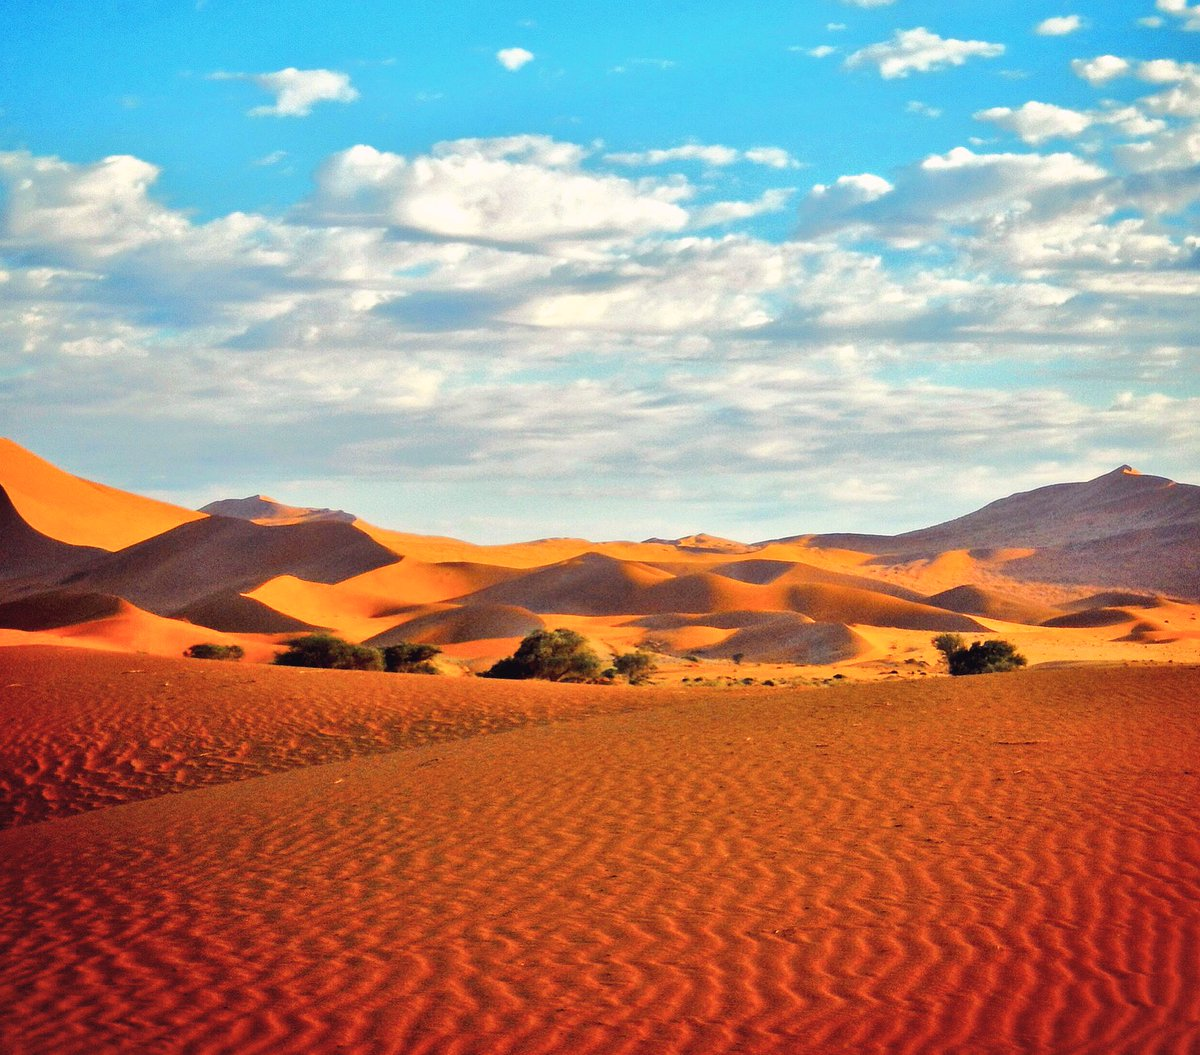 Step into the other worldly landscape of the Namib desert #Travel <br>http://pic.twitter.com/yU0dwiE9V1